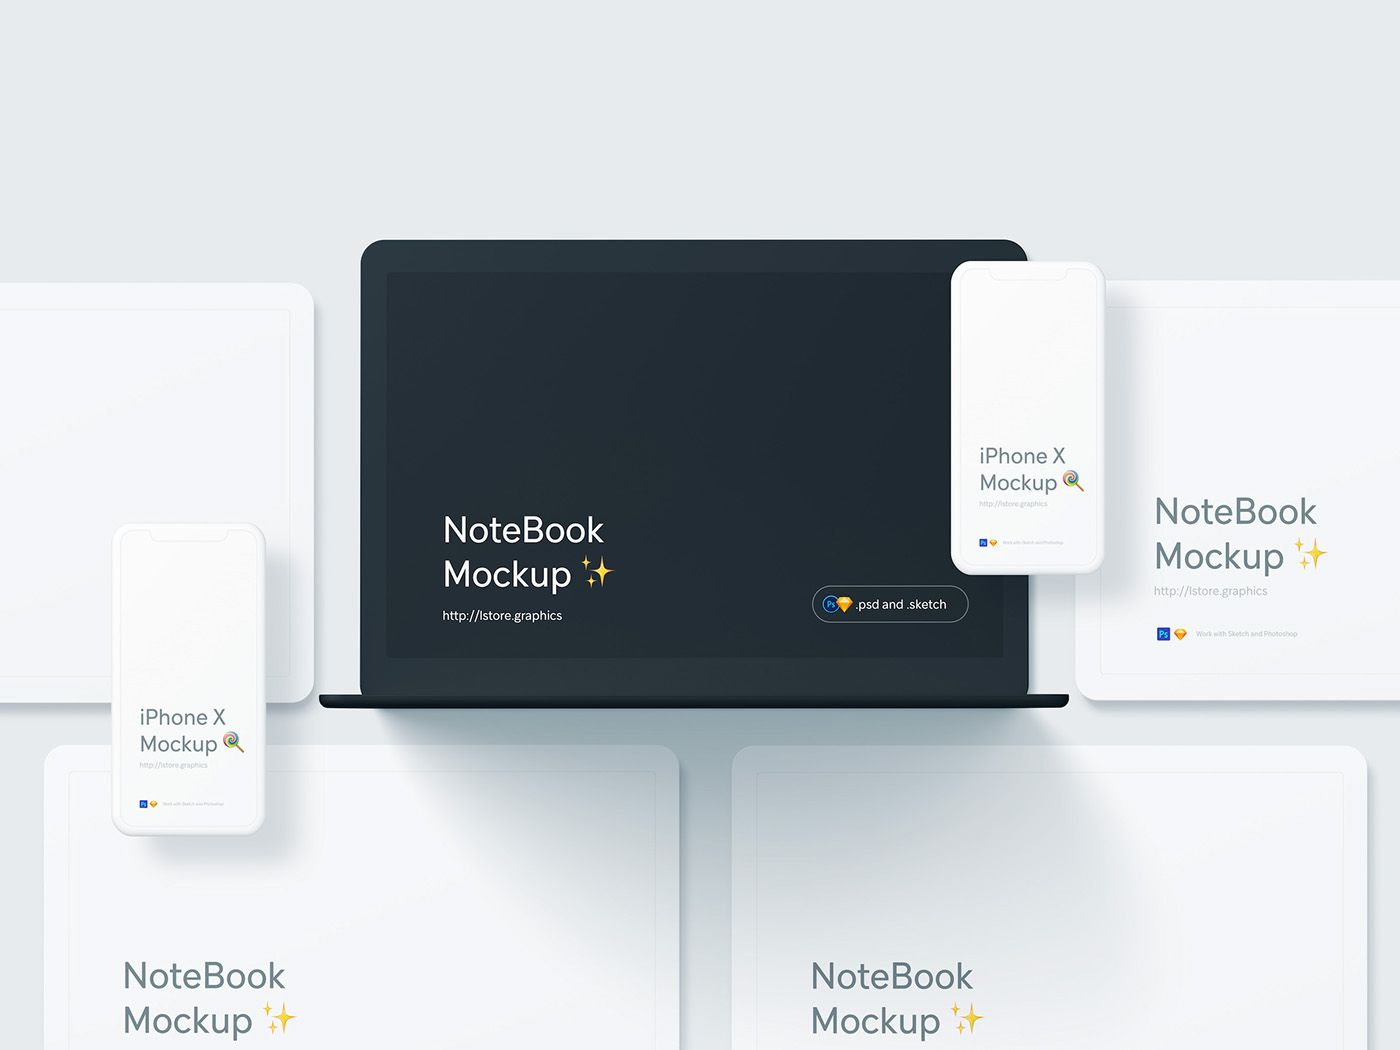 Mockups, download, free, freebie, macbook, mockup, mock-up, iphone x